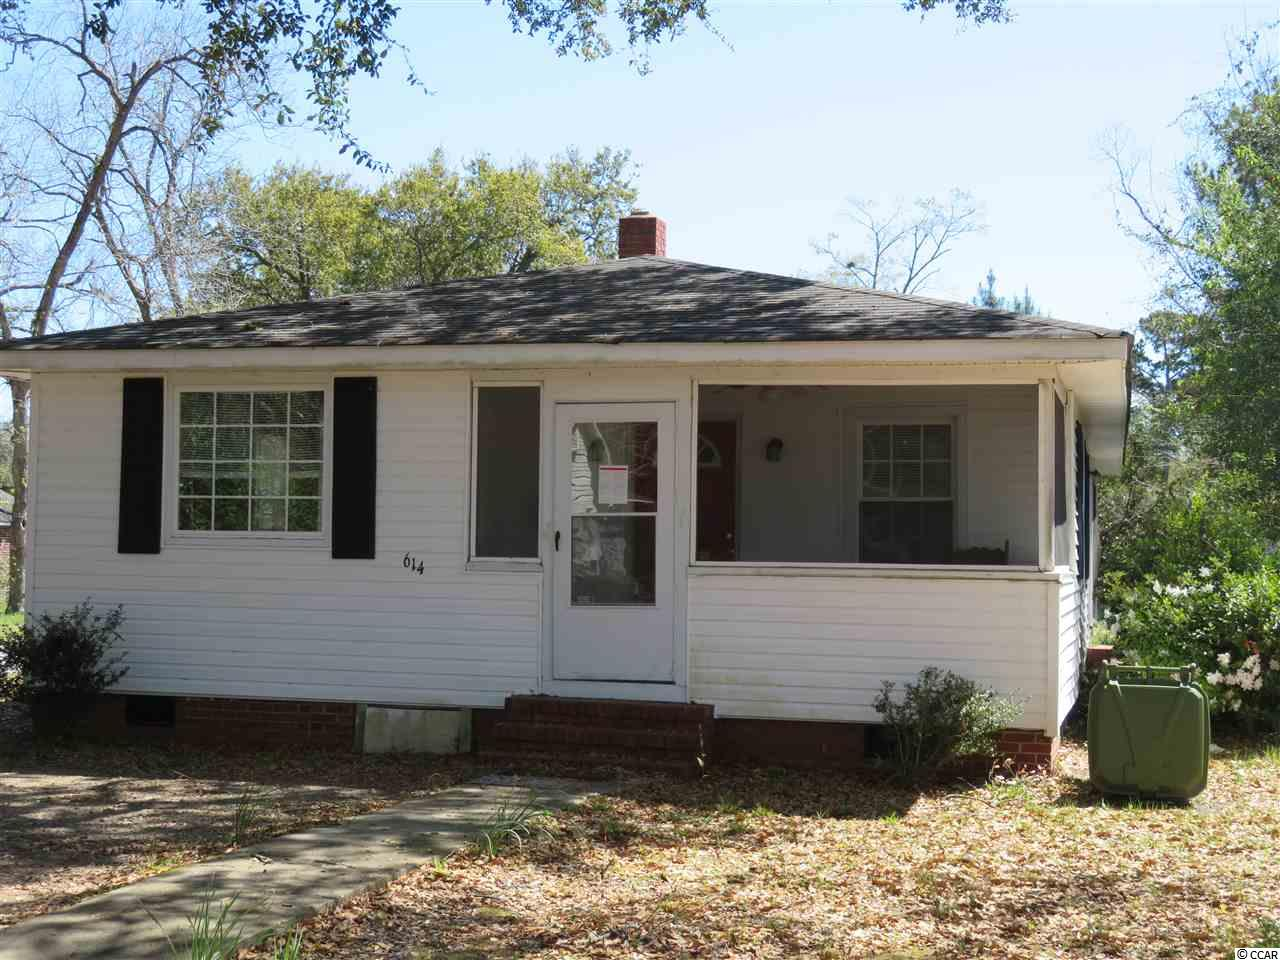 Here's your opportunity to own a home 1 mile away from historic Front street in Georgetown, SC. This 3 bedroom, 2 bathroom home is full of charm. Screened front porch and a detached 3 car garage adds so much character to this cozy property. Hardwood and laminate floors throughout. A little TLC will make this home the most comfortable home you could ever imagine. I forgot to mention, this property is on a 1 acre lot with no HOA and gorgeous live oak tees out front.! Schedule your showing today!